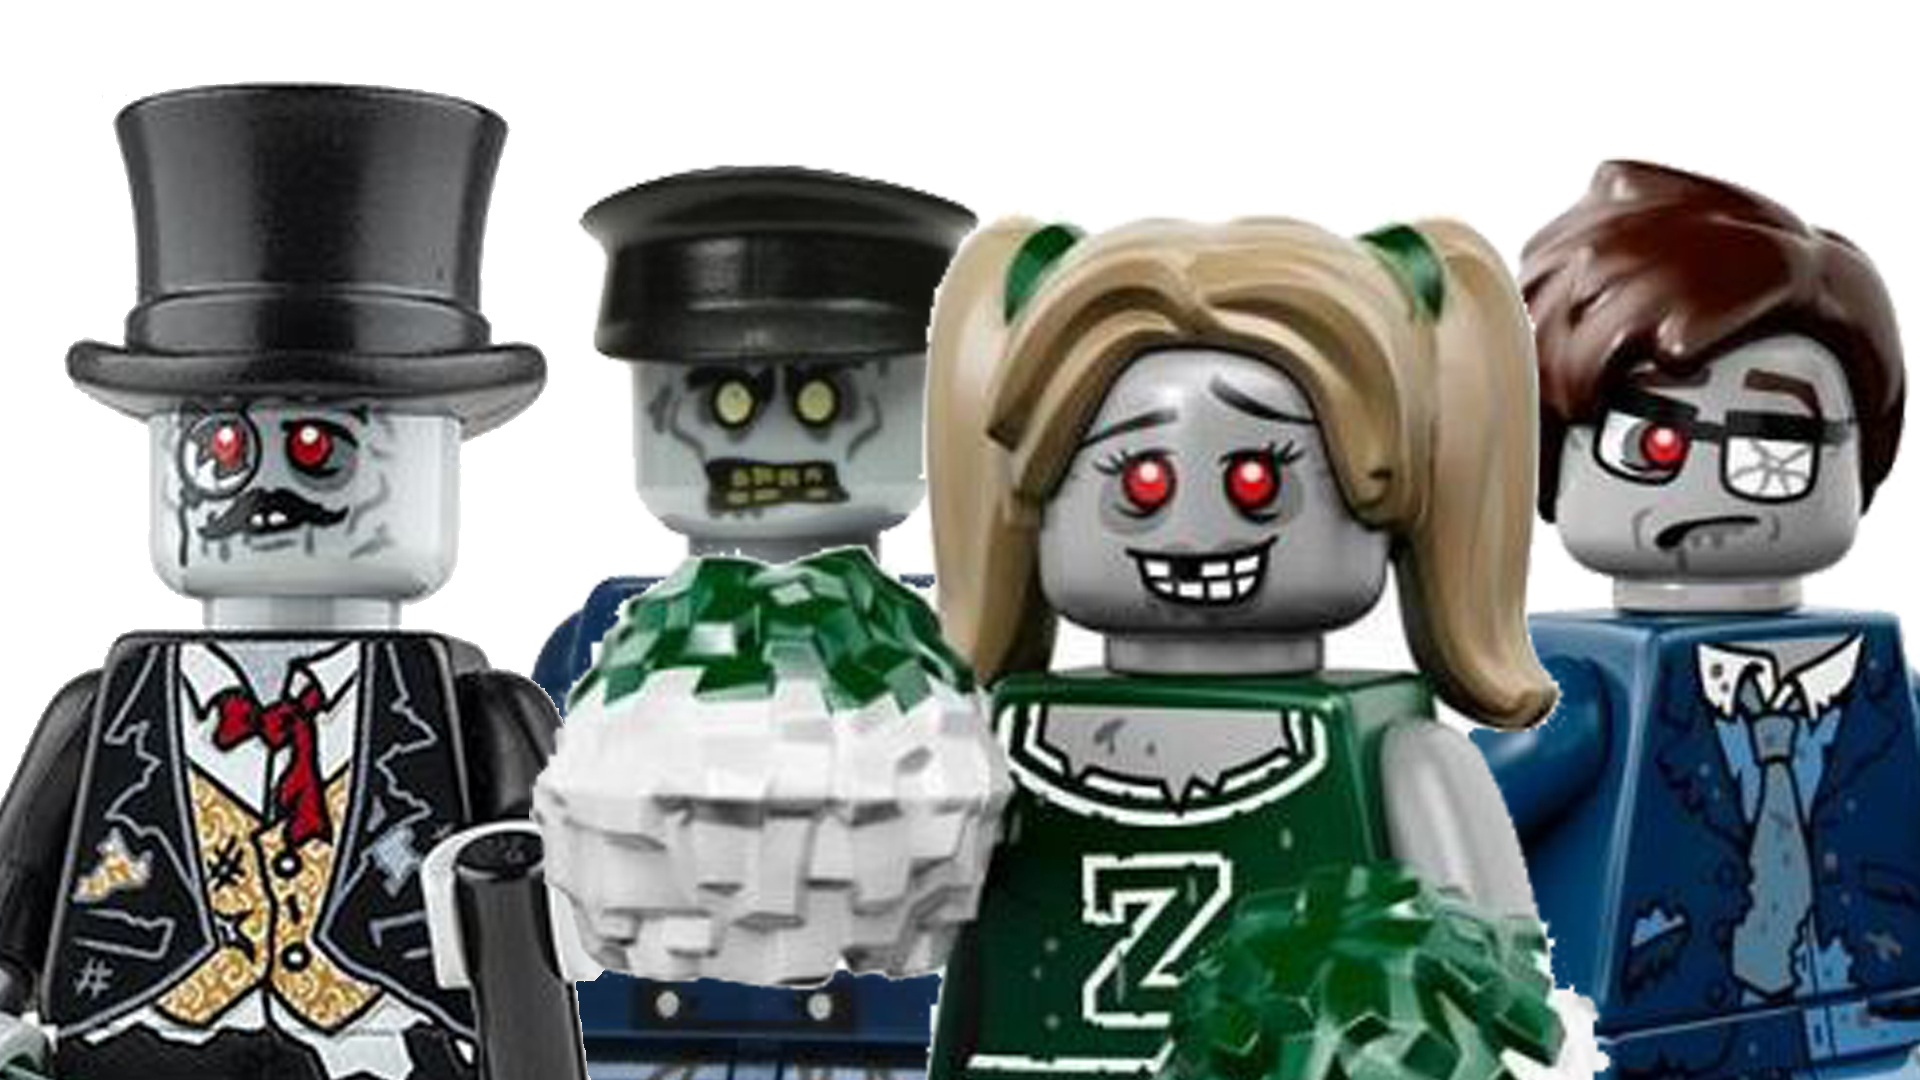 LEGO Zombie - Group of LEGO Zombies